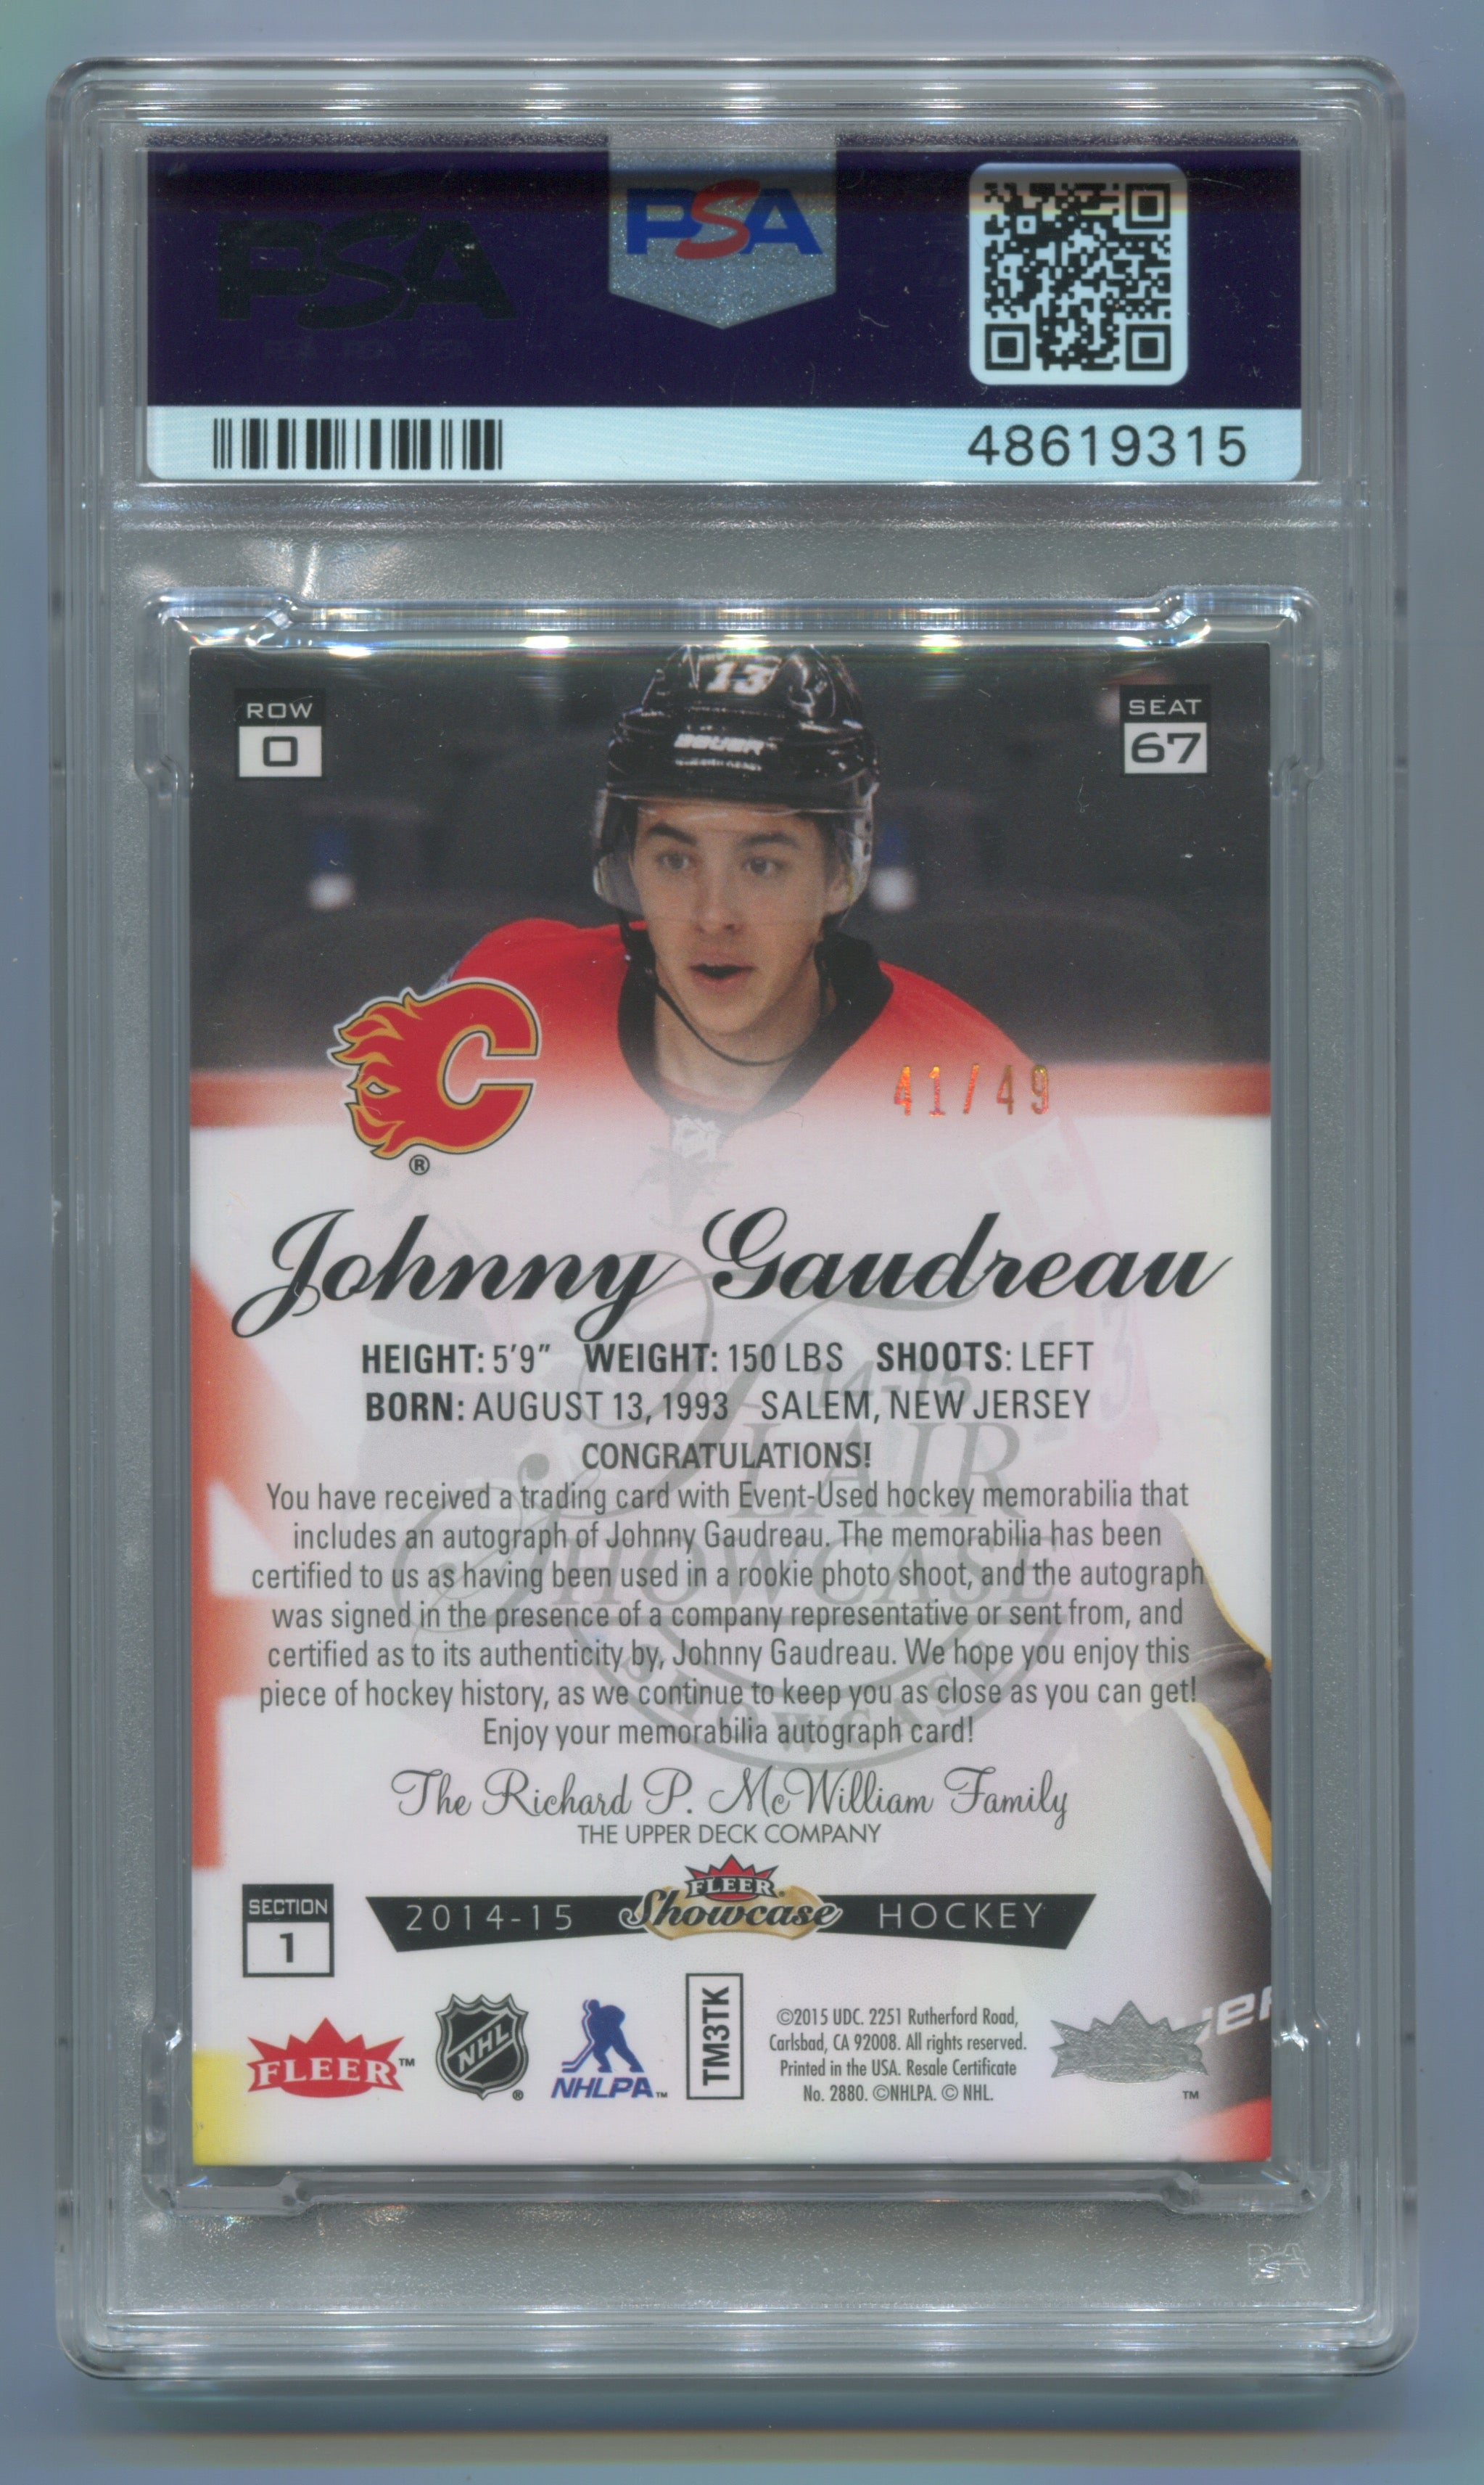 2014-15 Fleer Showcase Flair Memorabilia Prime #67 Johnny Gaudreau #41/49 PSA 5 | Eastridge Sports Cards